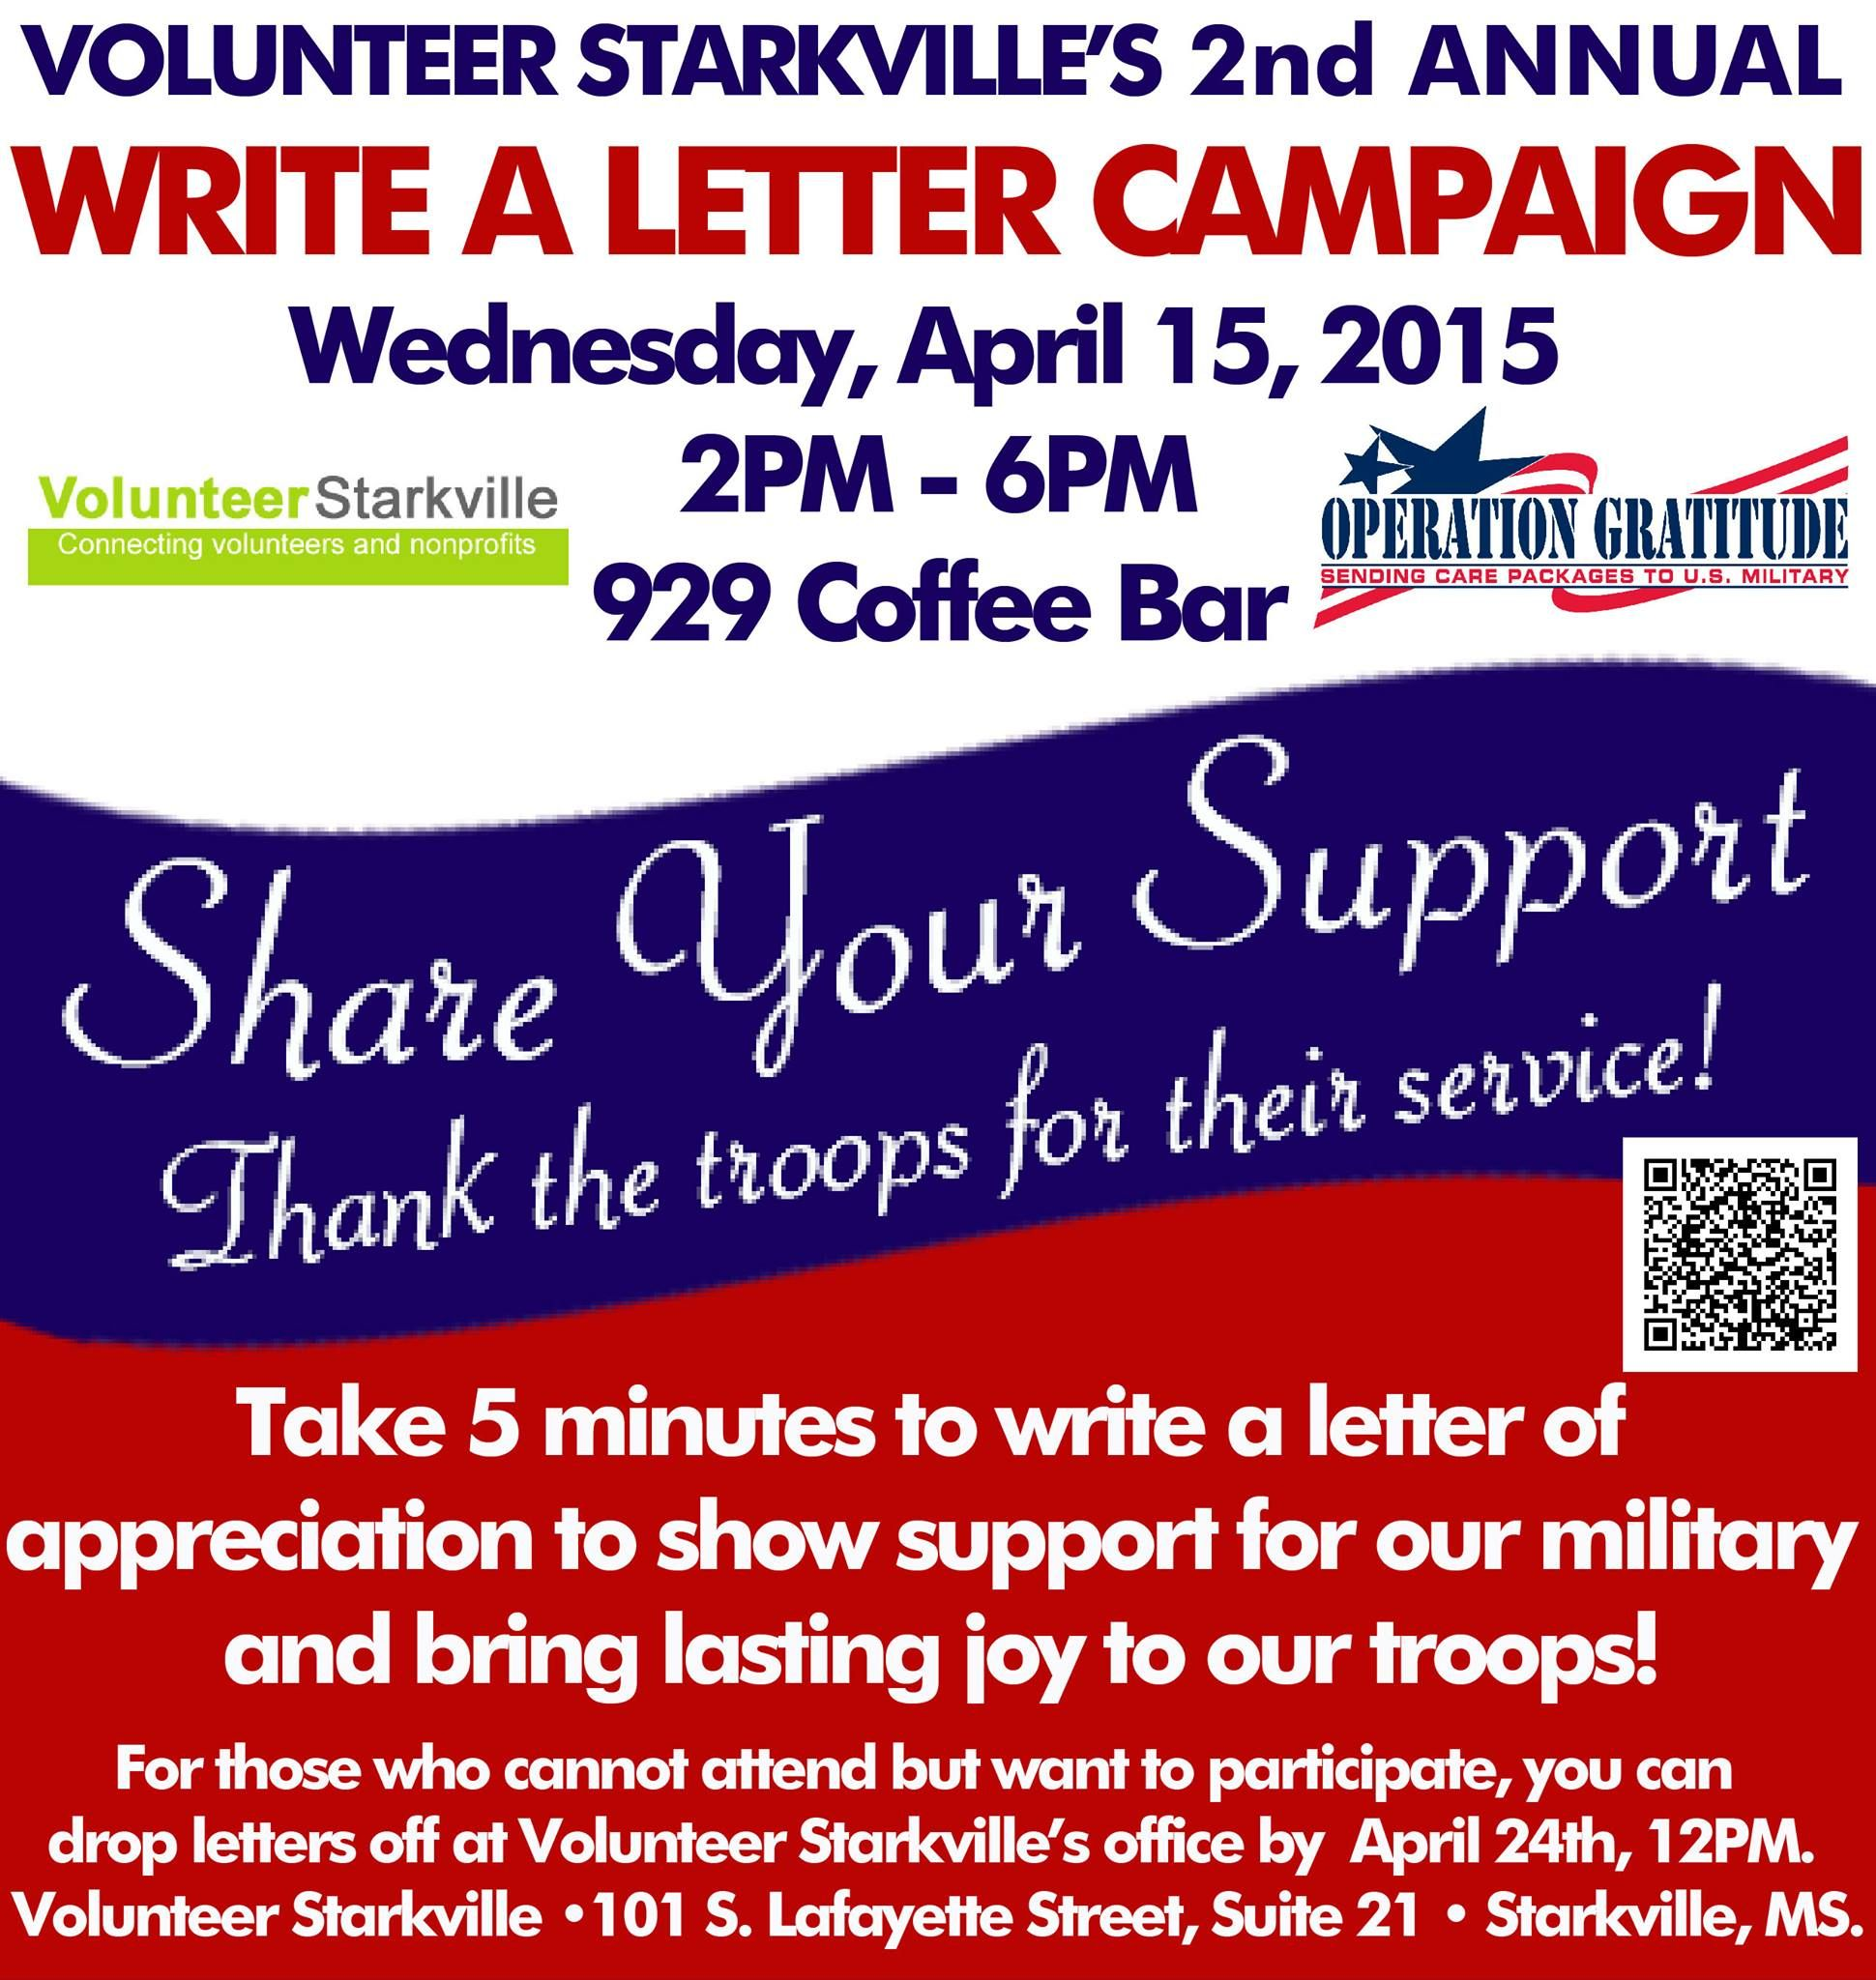 Volunteer StarkvilleS Nd Annual Write A Letter Campaign To